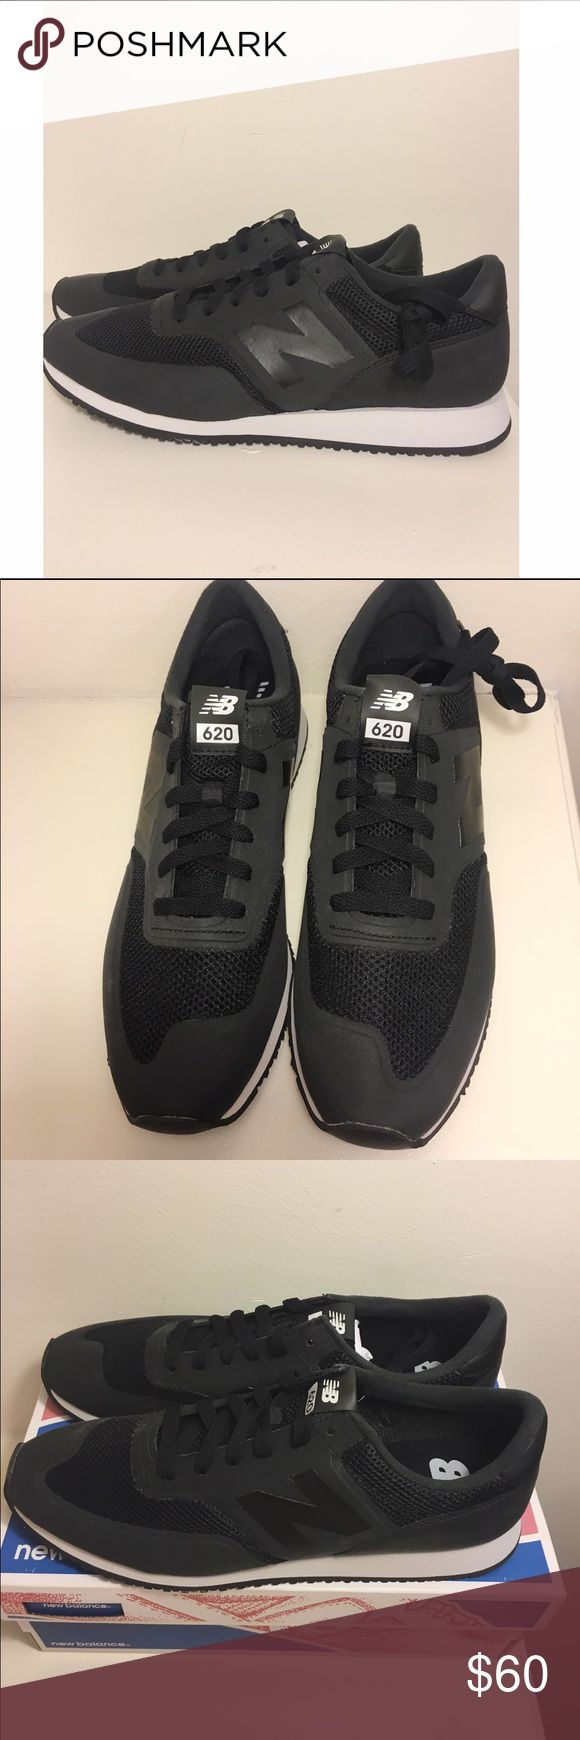 Brand New Black New Balance Shoes Brand new, with box. All black new balance shoes. Women's 9, Men's 7.5! 💗 New Balance Shoes Sneakers